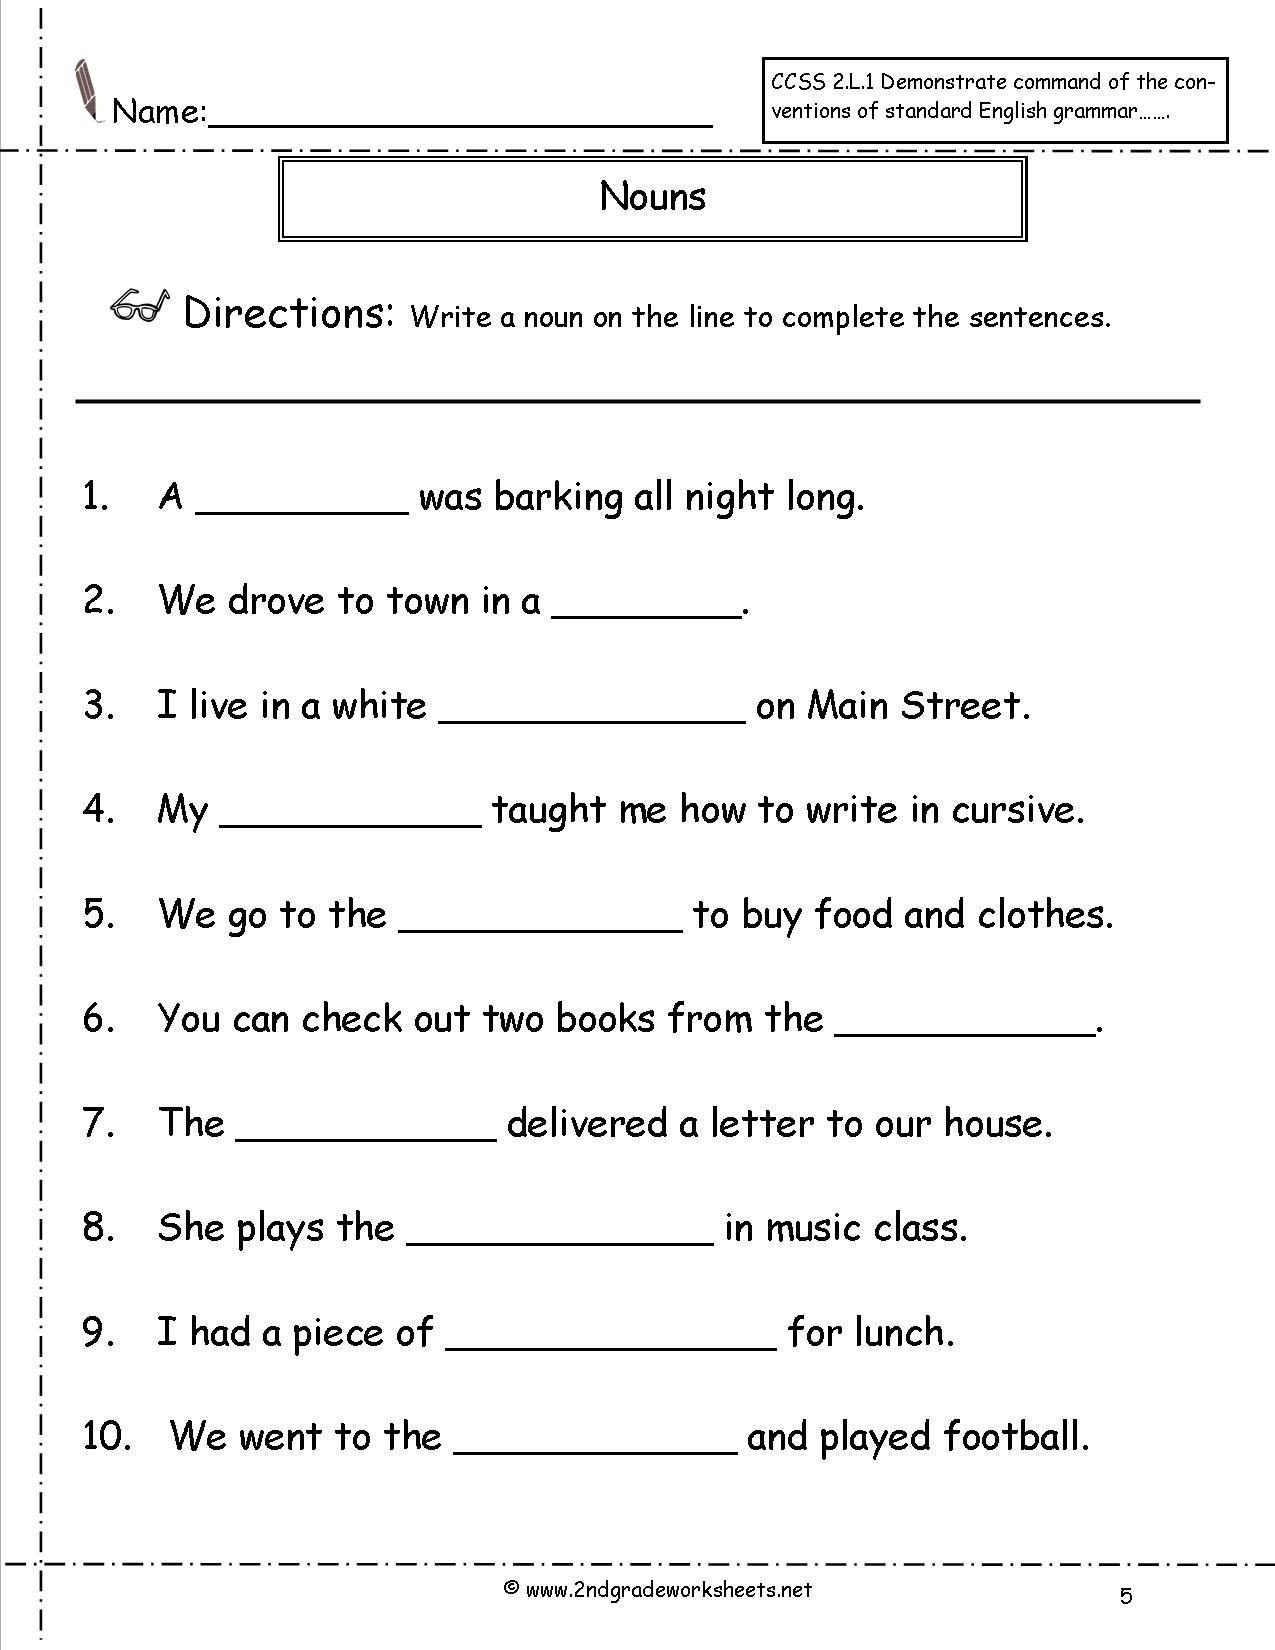 2nd Grade Grammar Worksheets Free Math Worksheet 2nd Grade Grammar Worksheets Math Worksheet